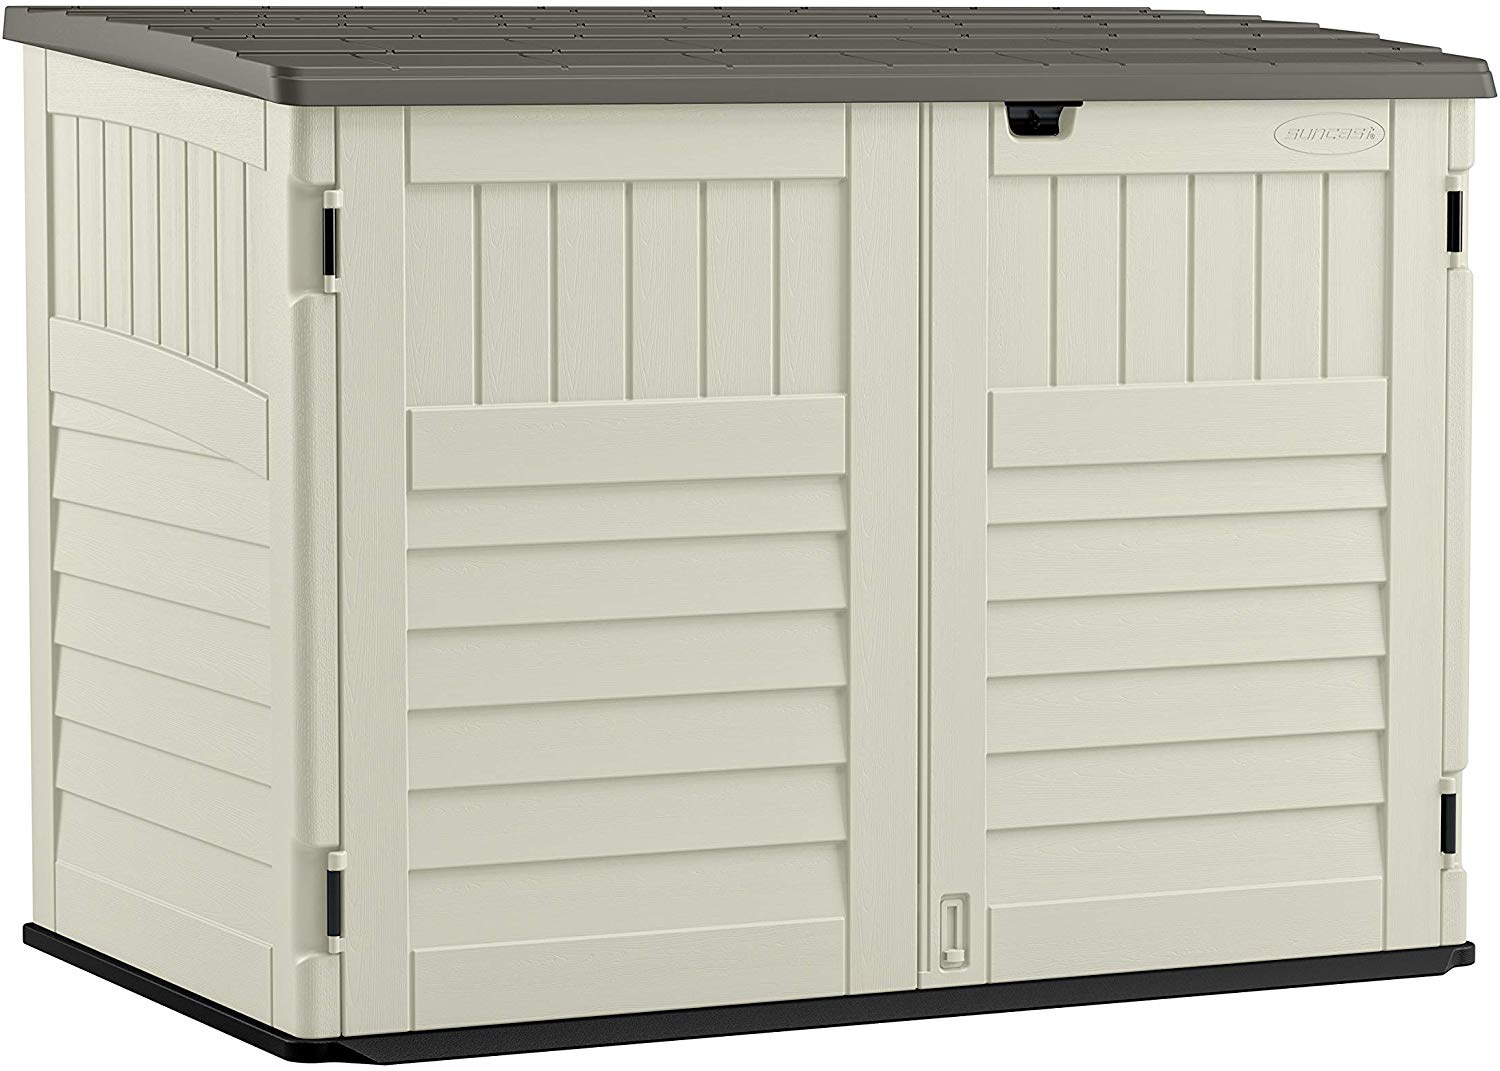 Review of Suncast 5' x 3' Horizontal Stow-Away Storage Shed - Natural Wood-like Outdoor Storage